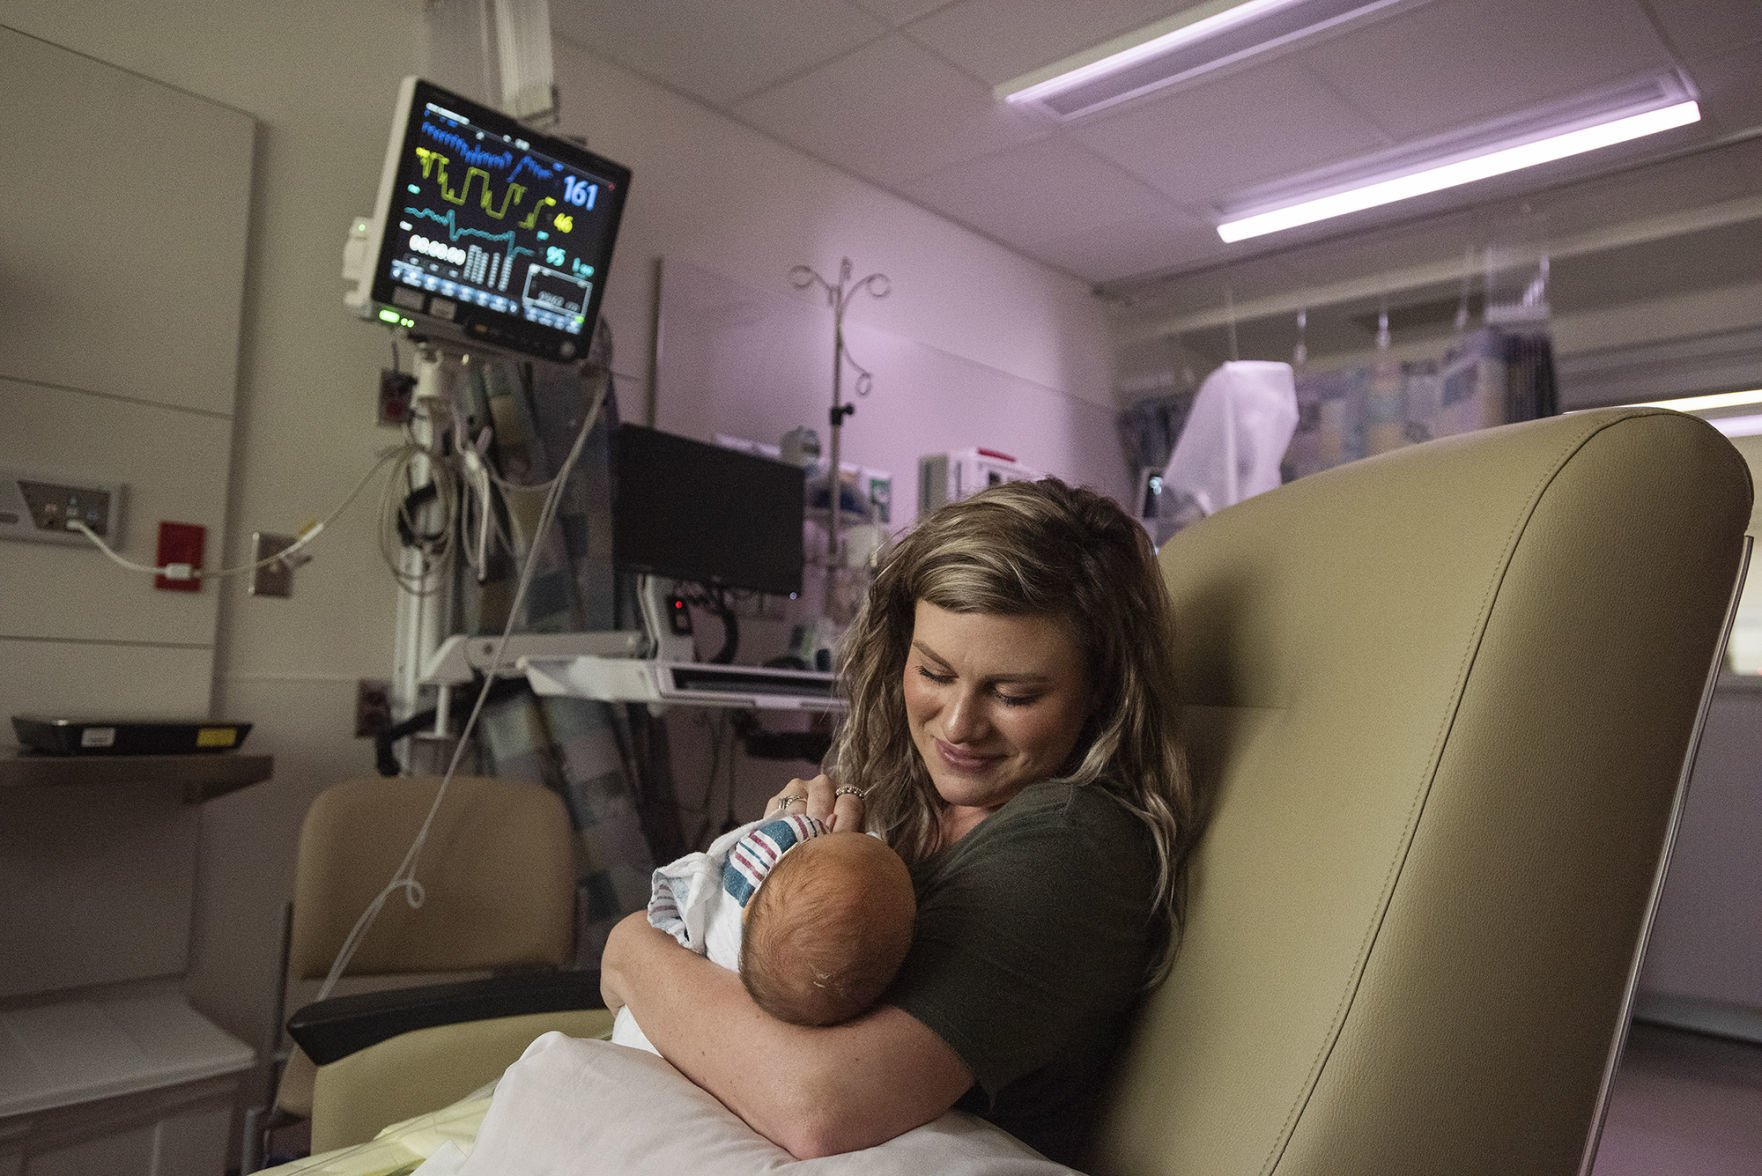 Empowering Mothers: Christus Mother Frances Hospitals focus on maternal and infant health with expanded NICU, TexasAIM and breastfeeding policies